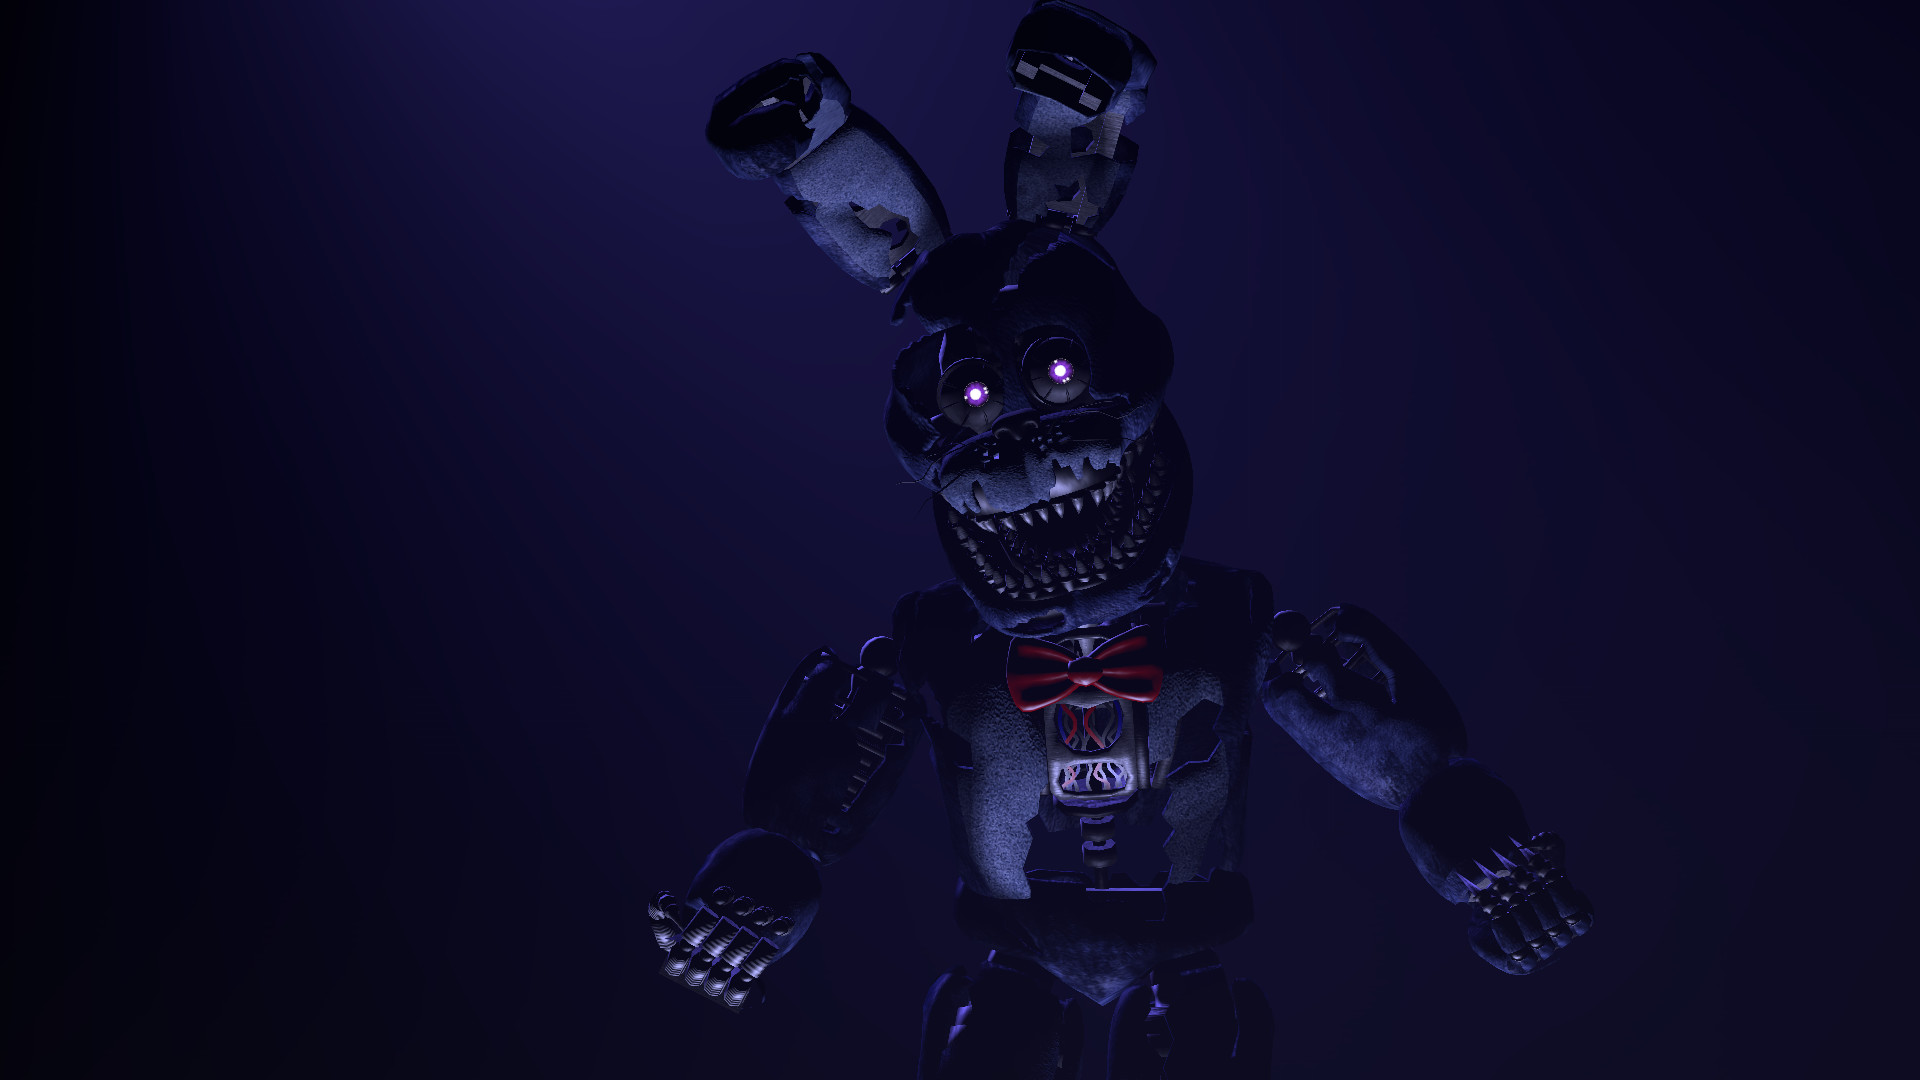 FNAF Nightmare Bonnie HD Wallpapers Free Download » Unique High Resolution  Wallpapers